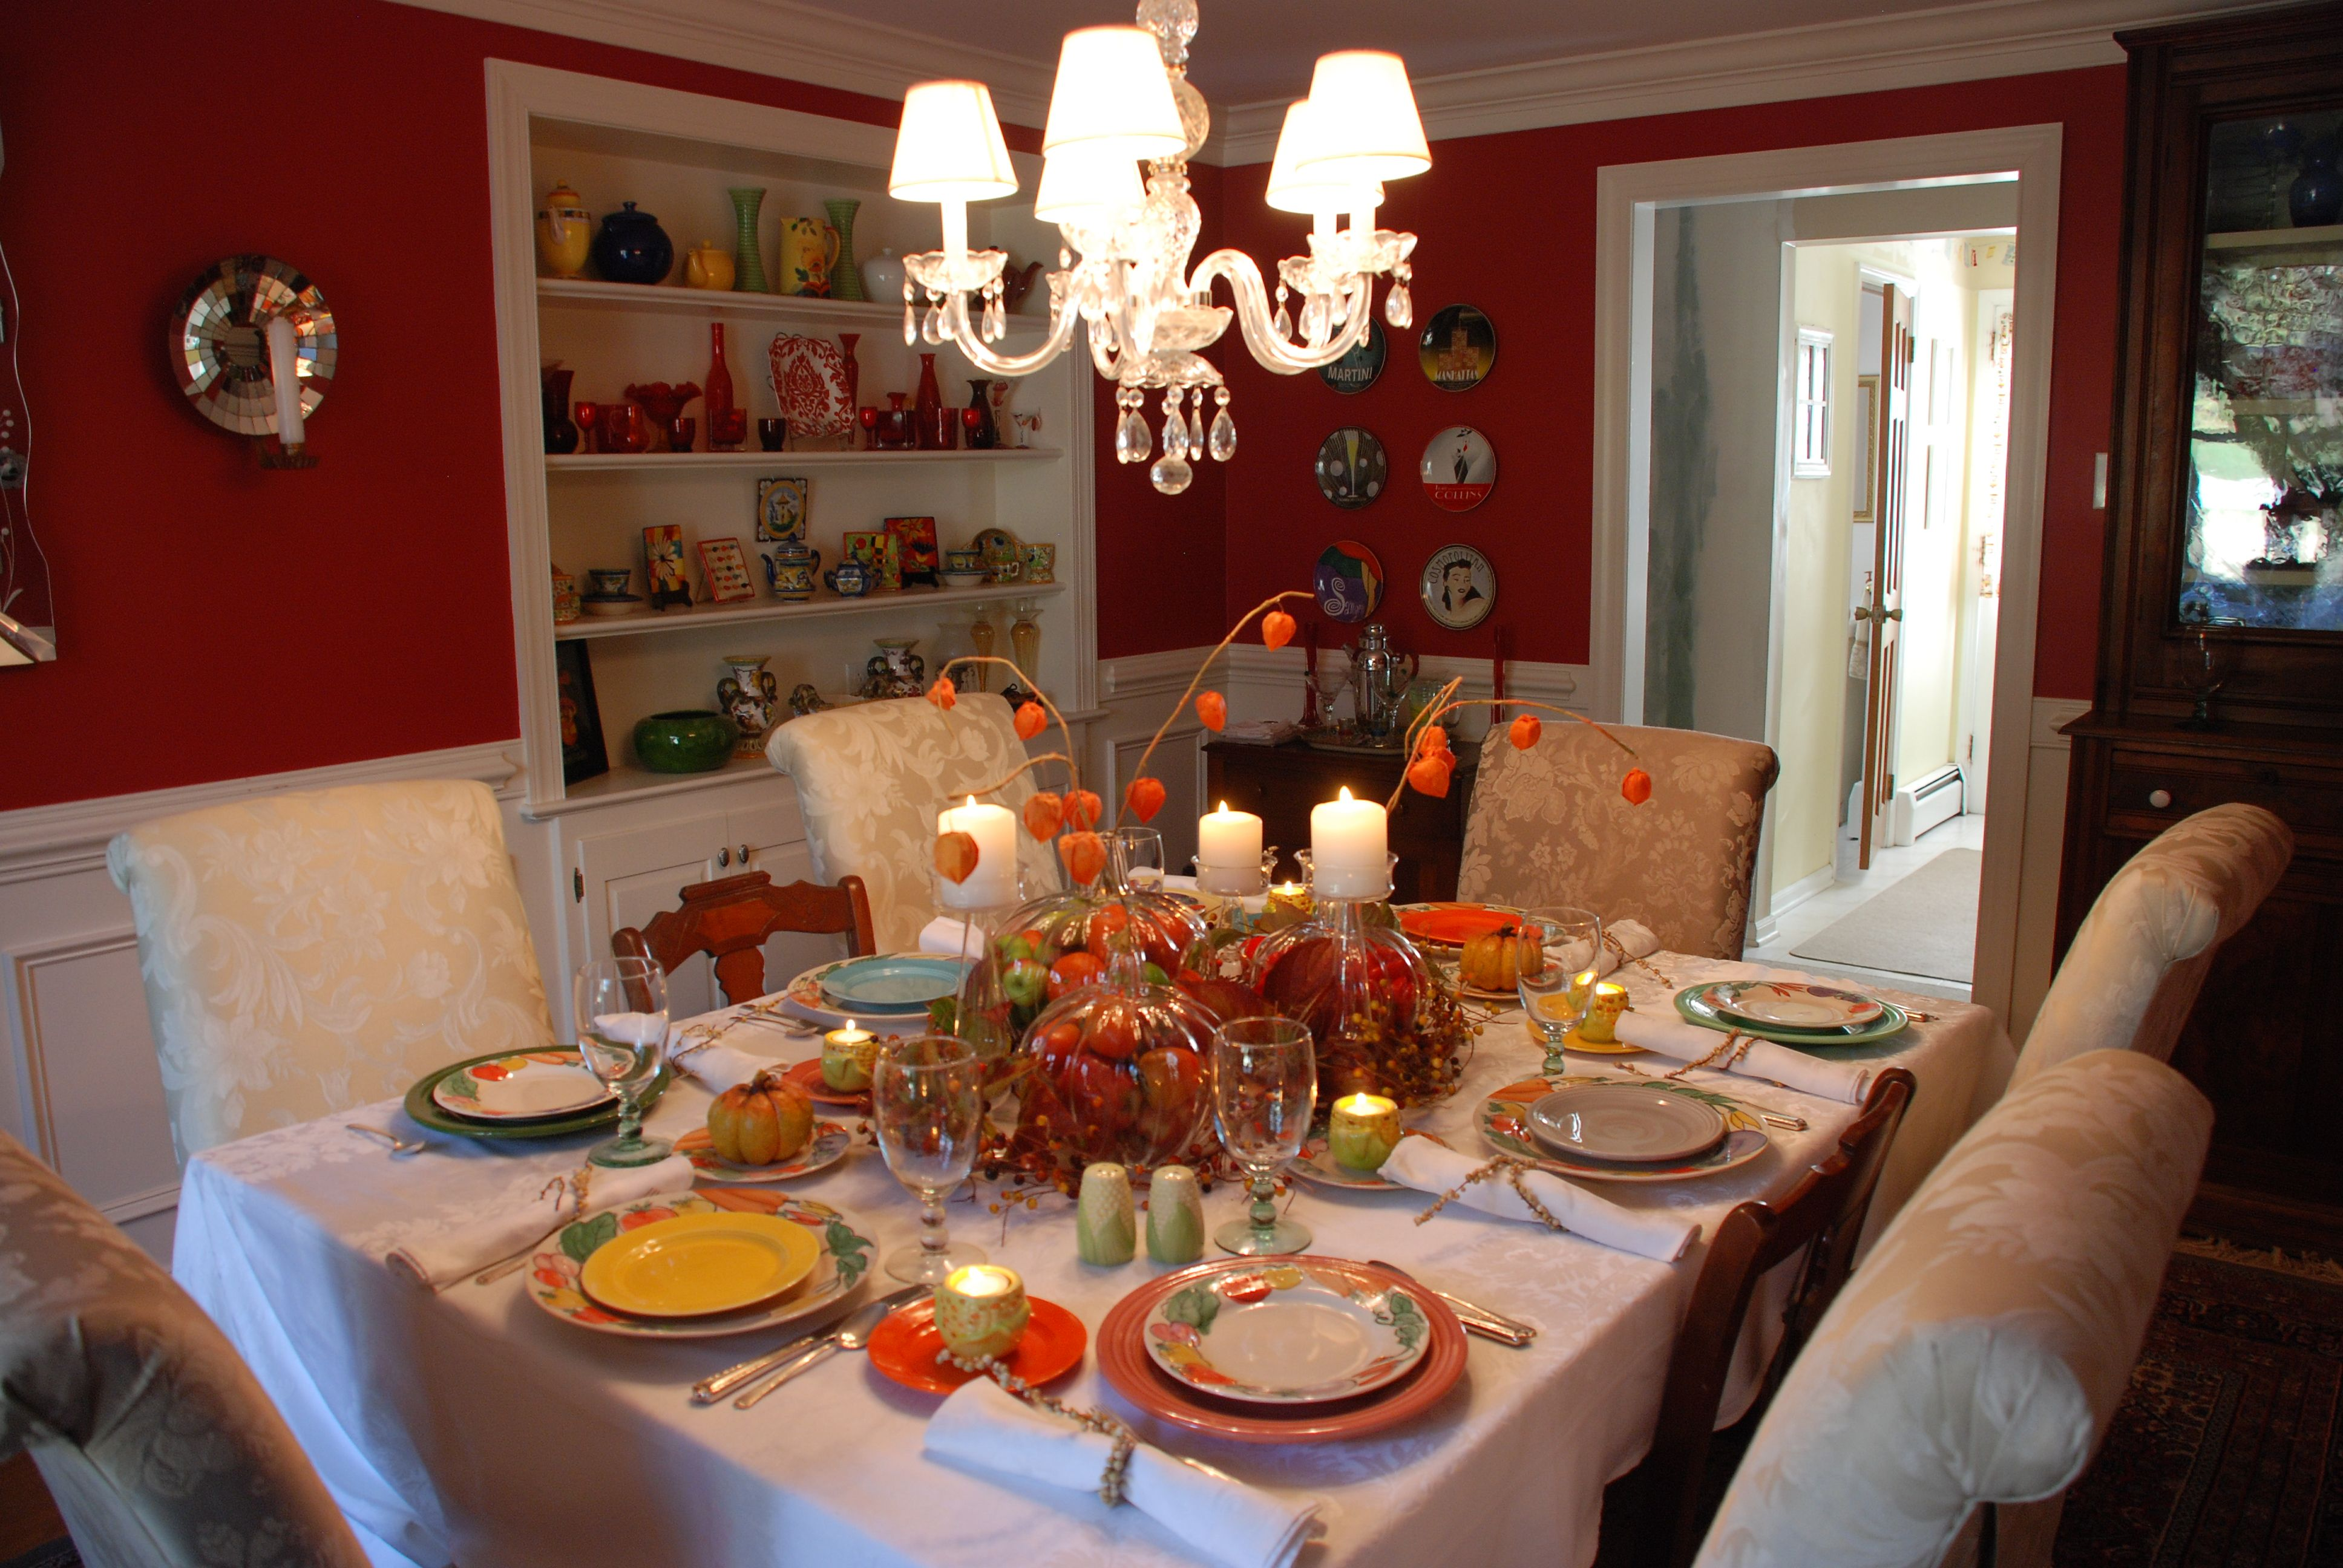 Another Thanksgiving Table